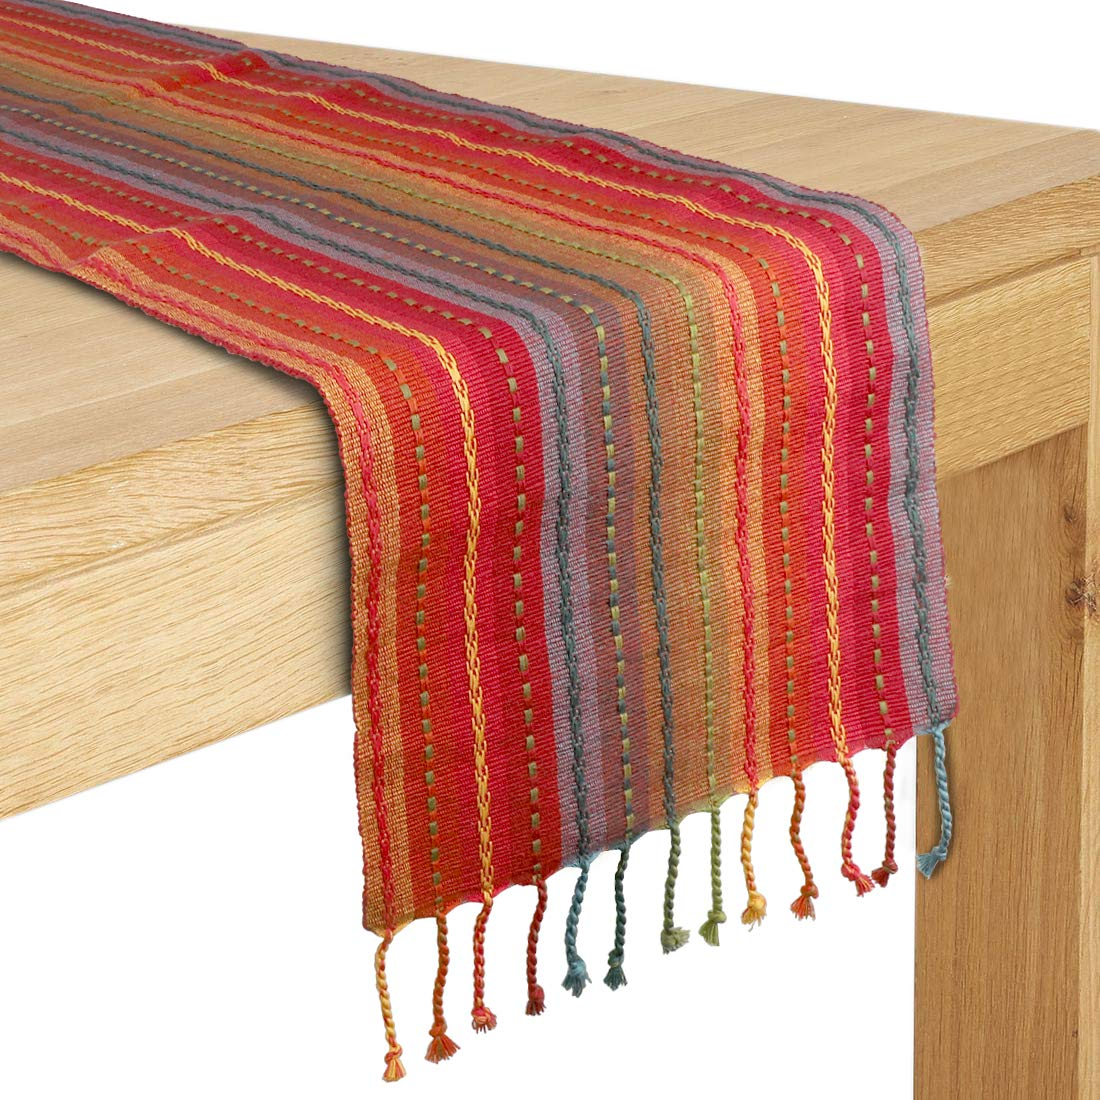 Cotton Table Runner with fringes 13x108 Perfect for all Seasons and everyday use